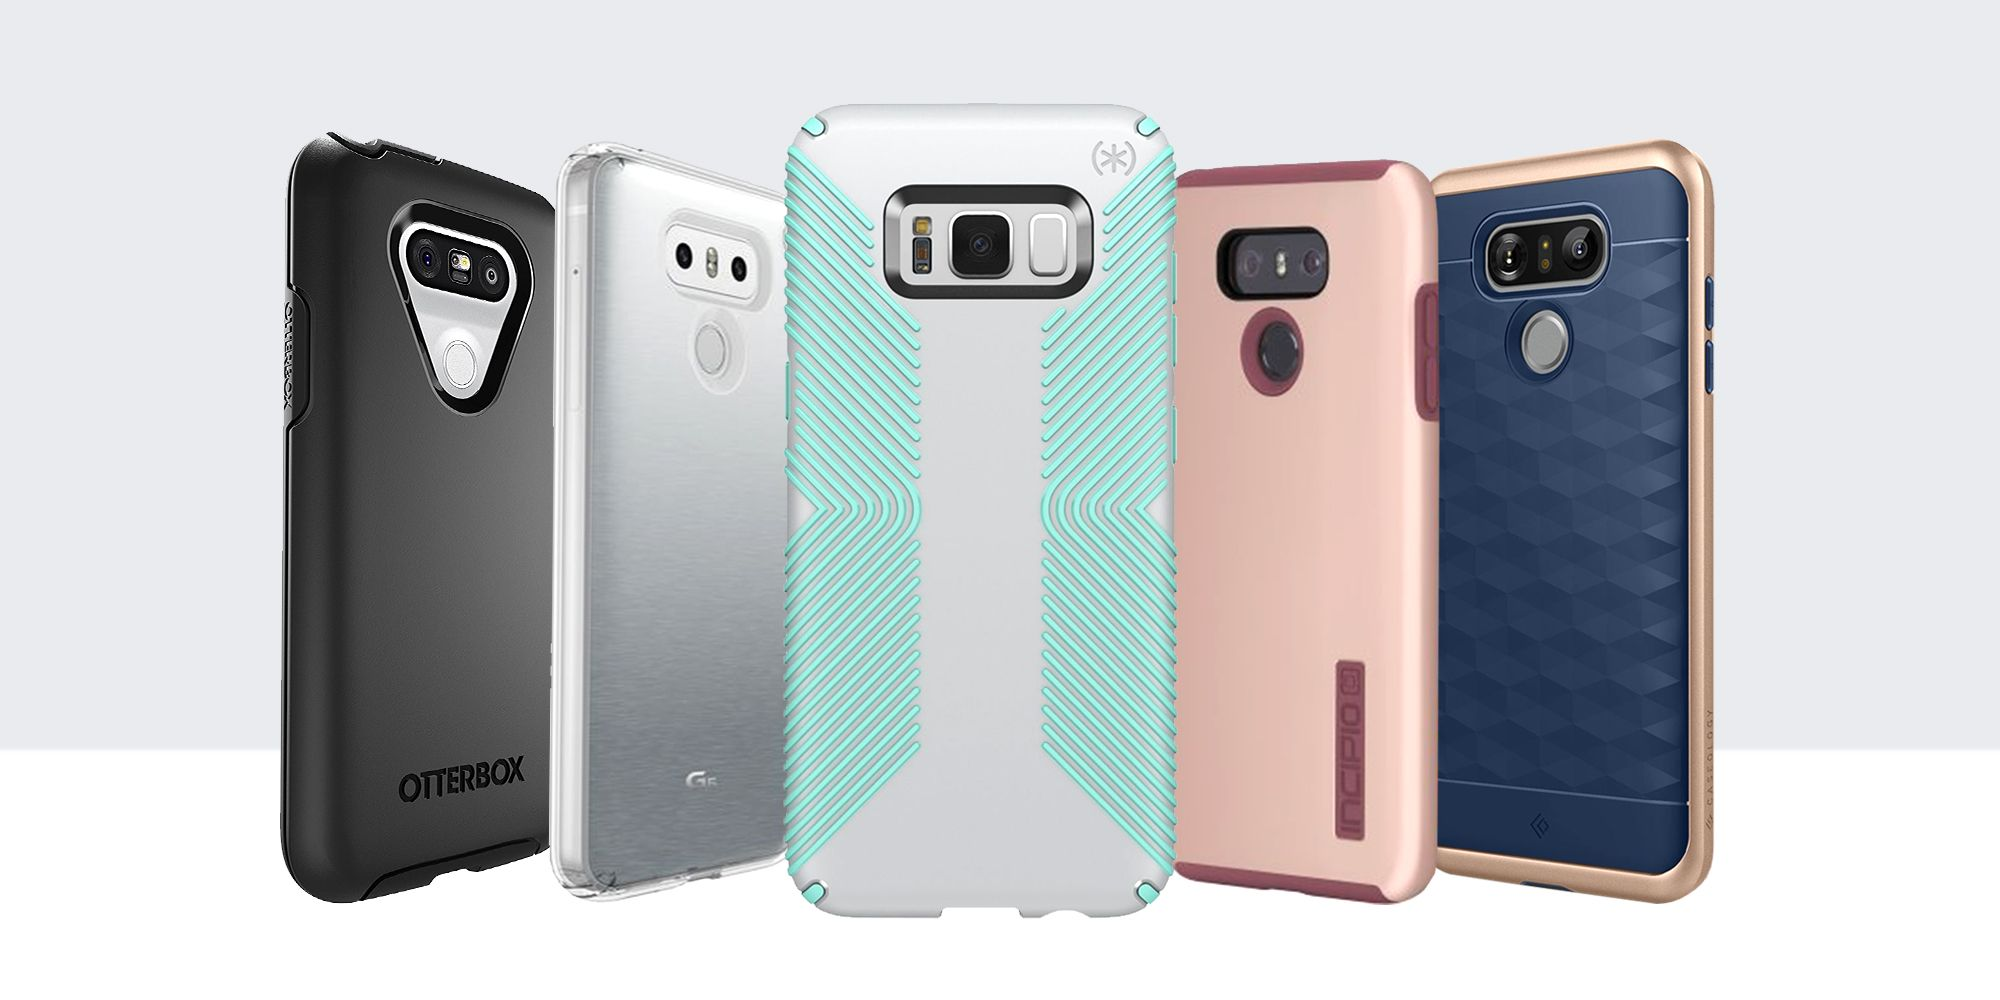 best service 23854 e3d38 9 Best LG G6 Cases for 2018 - Cool LG Phone Cases to Protect Your ...